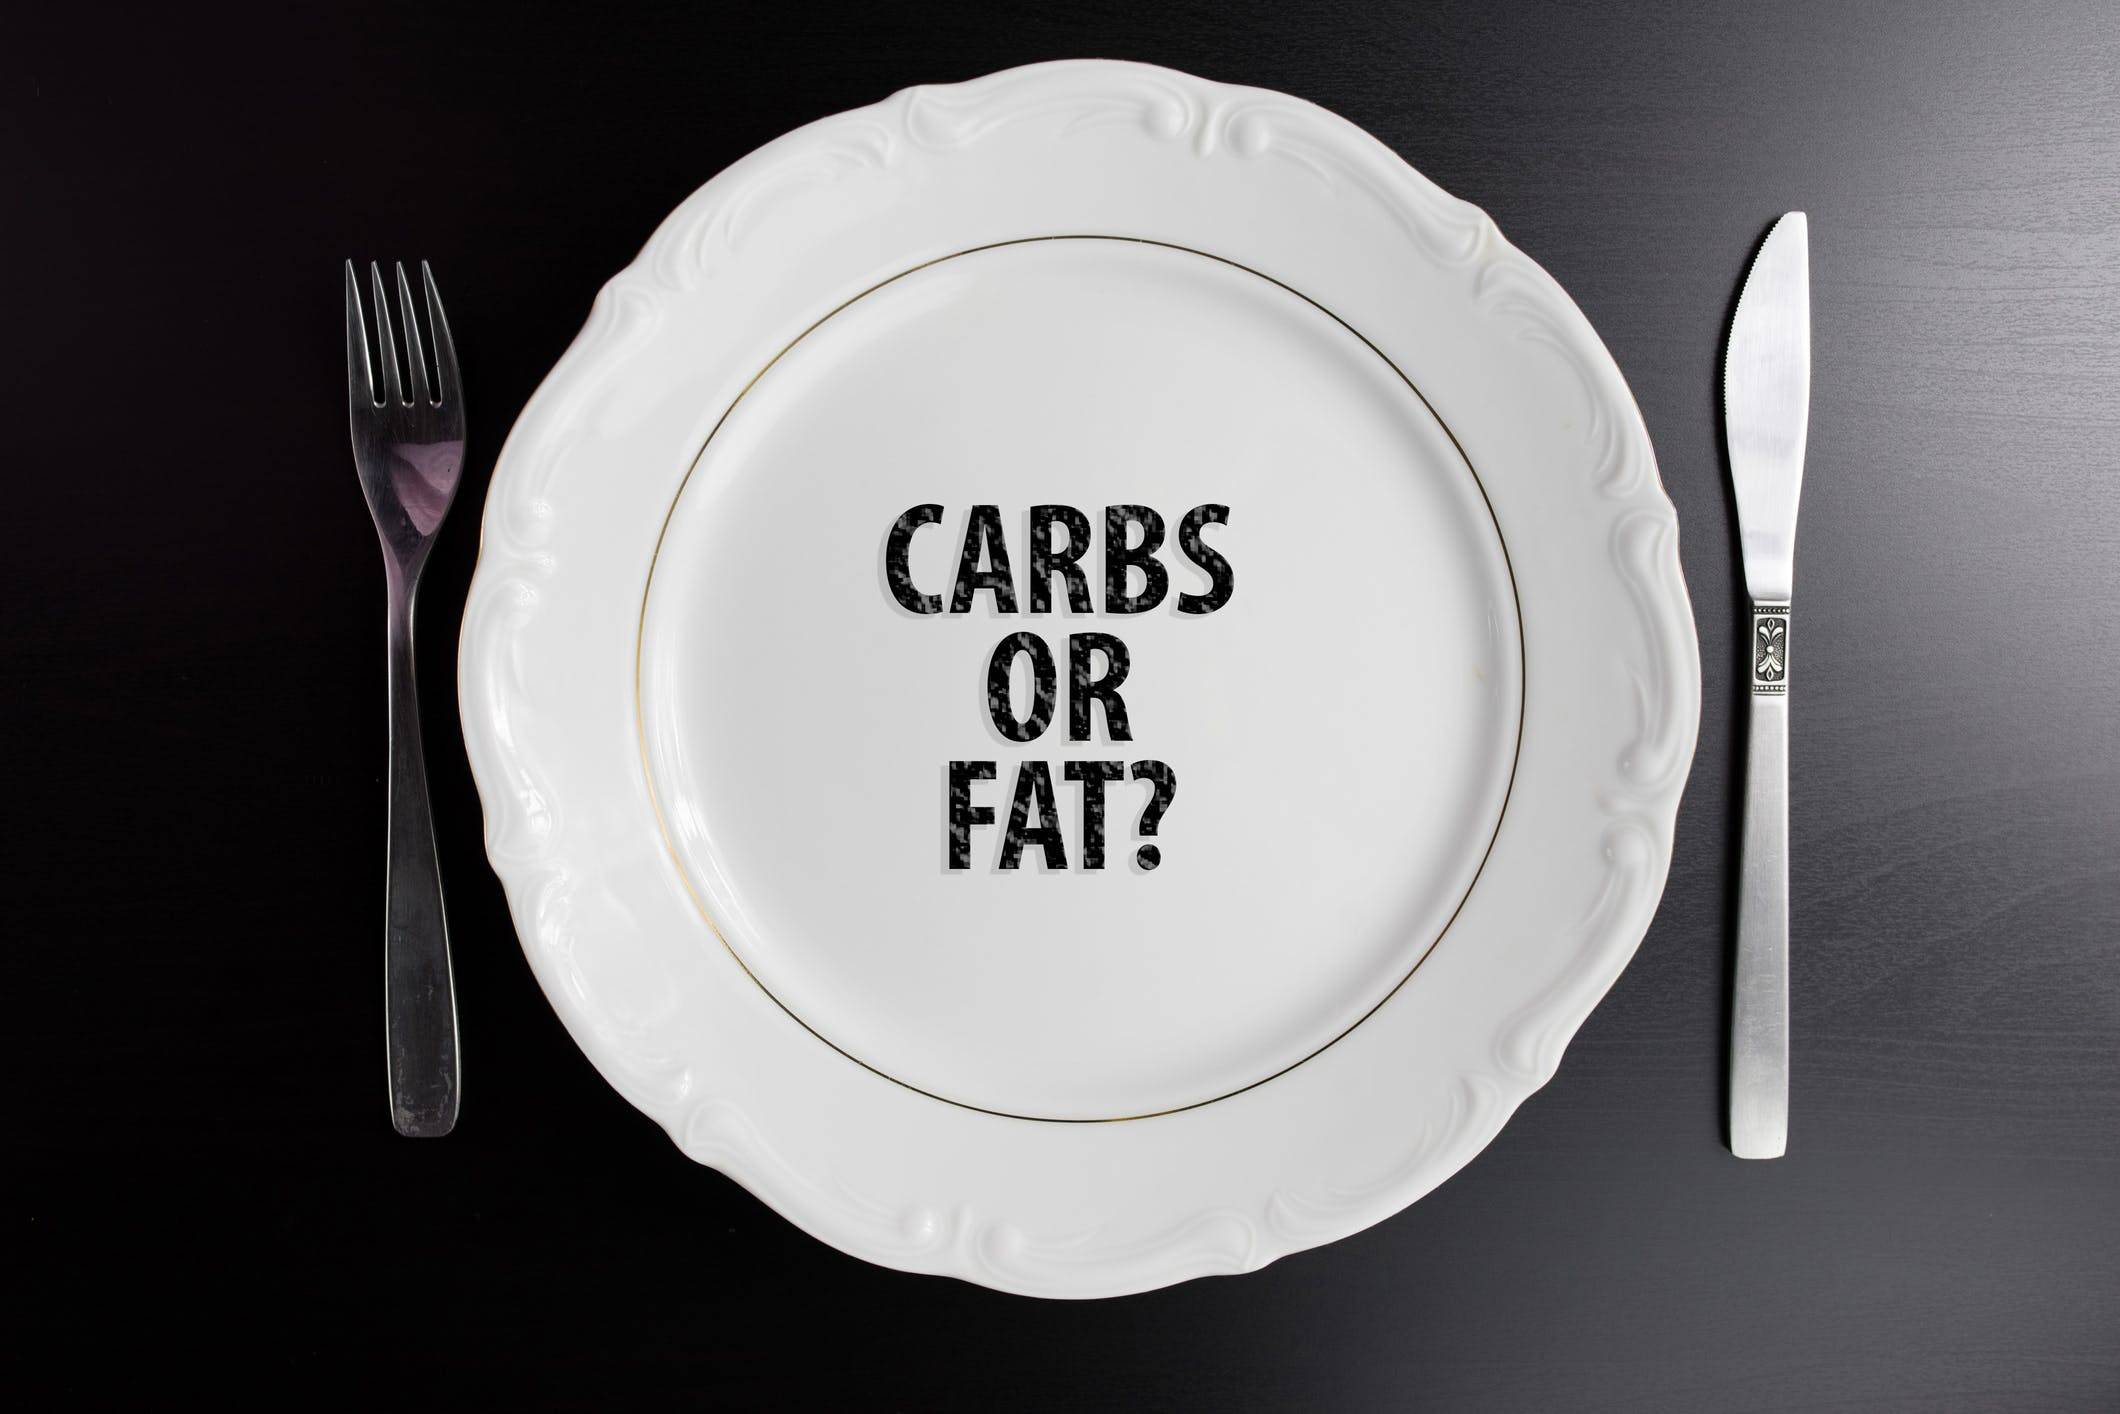 """Nina Teicholz in WSJ: """"Carbs, good for you? Fat chance!"""""""